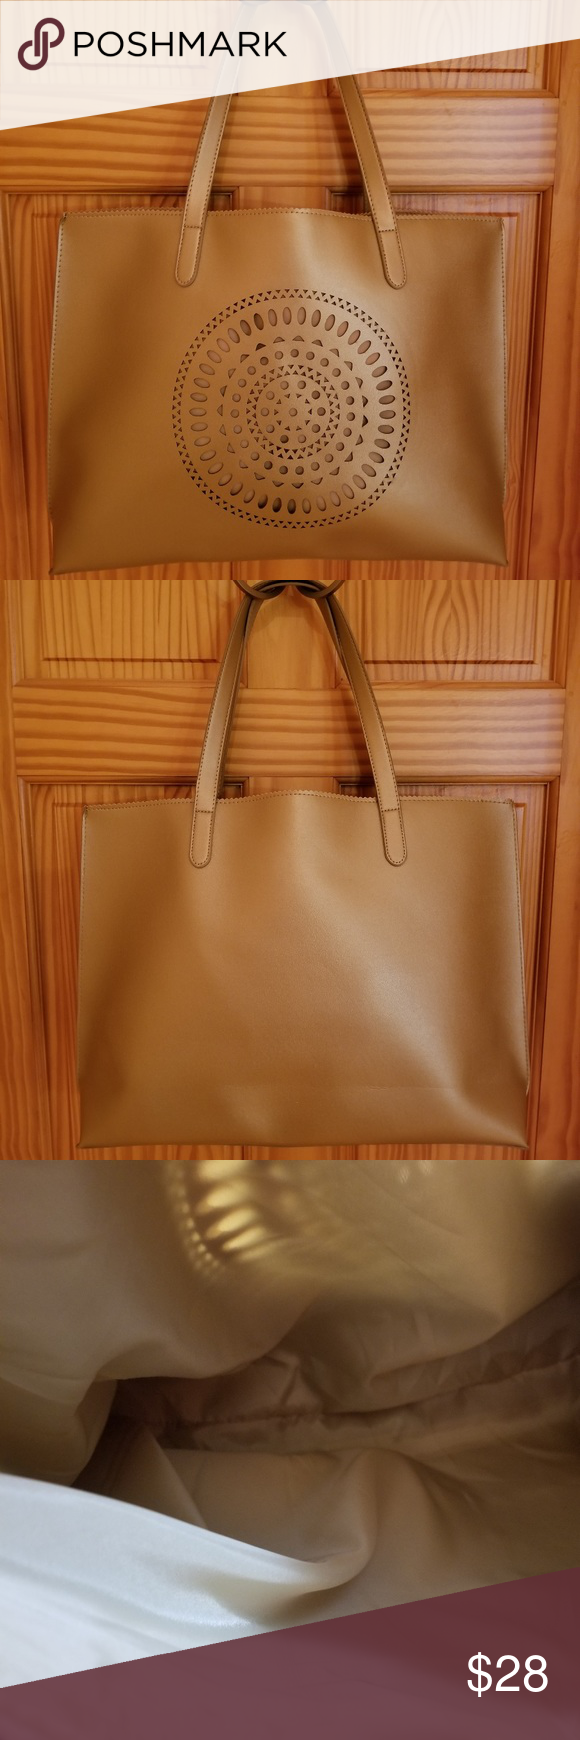 Neiman Marcus Large Gold Faux Leather Tote Bag Neiman Marcus Large Gold  Faux Leather Tote Bag c7fd013f6e